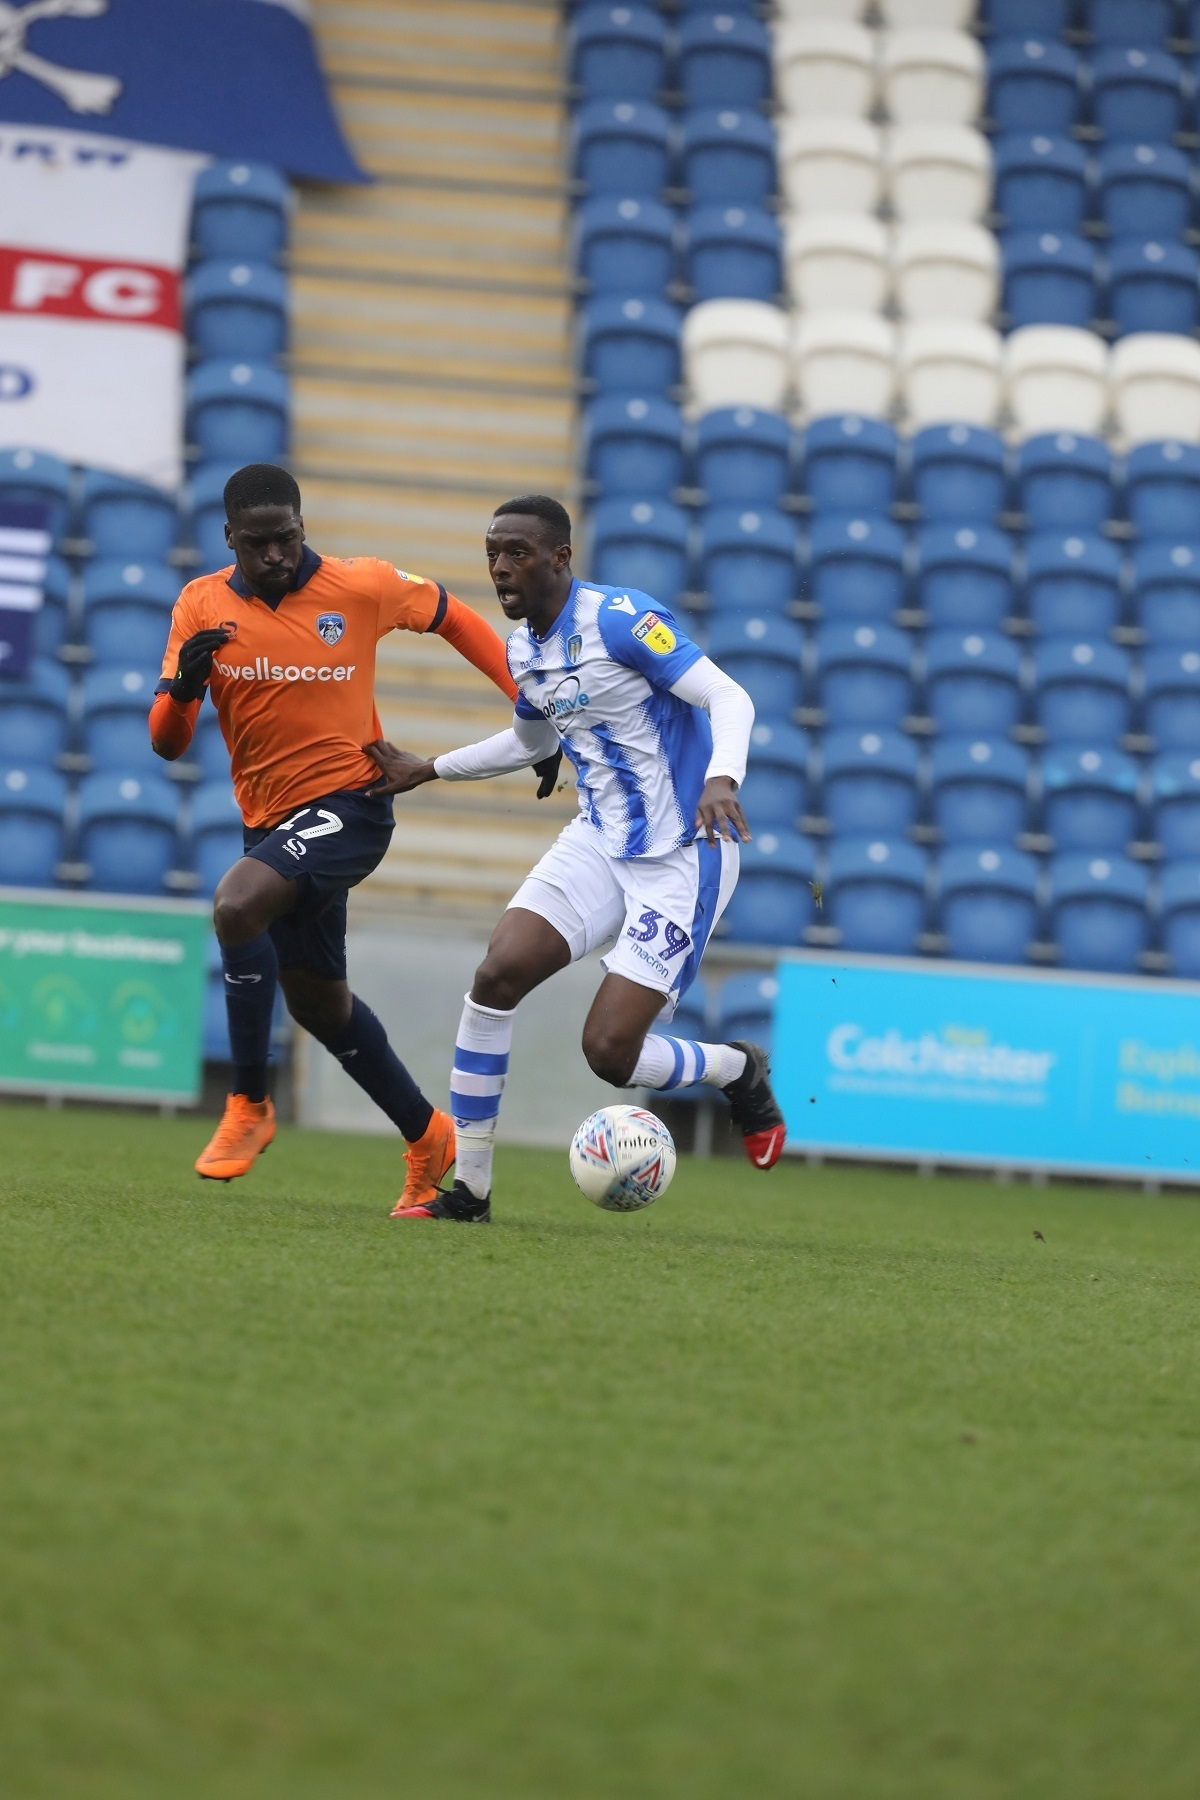 Wing play - Colchester United's Abo Eisa takes on Oldham's Christopher Missilou during the U's 2-0 loss Picture: STEVE BRADING